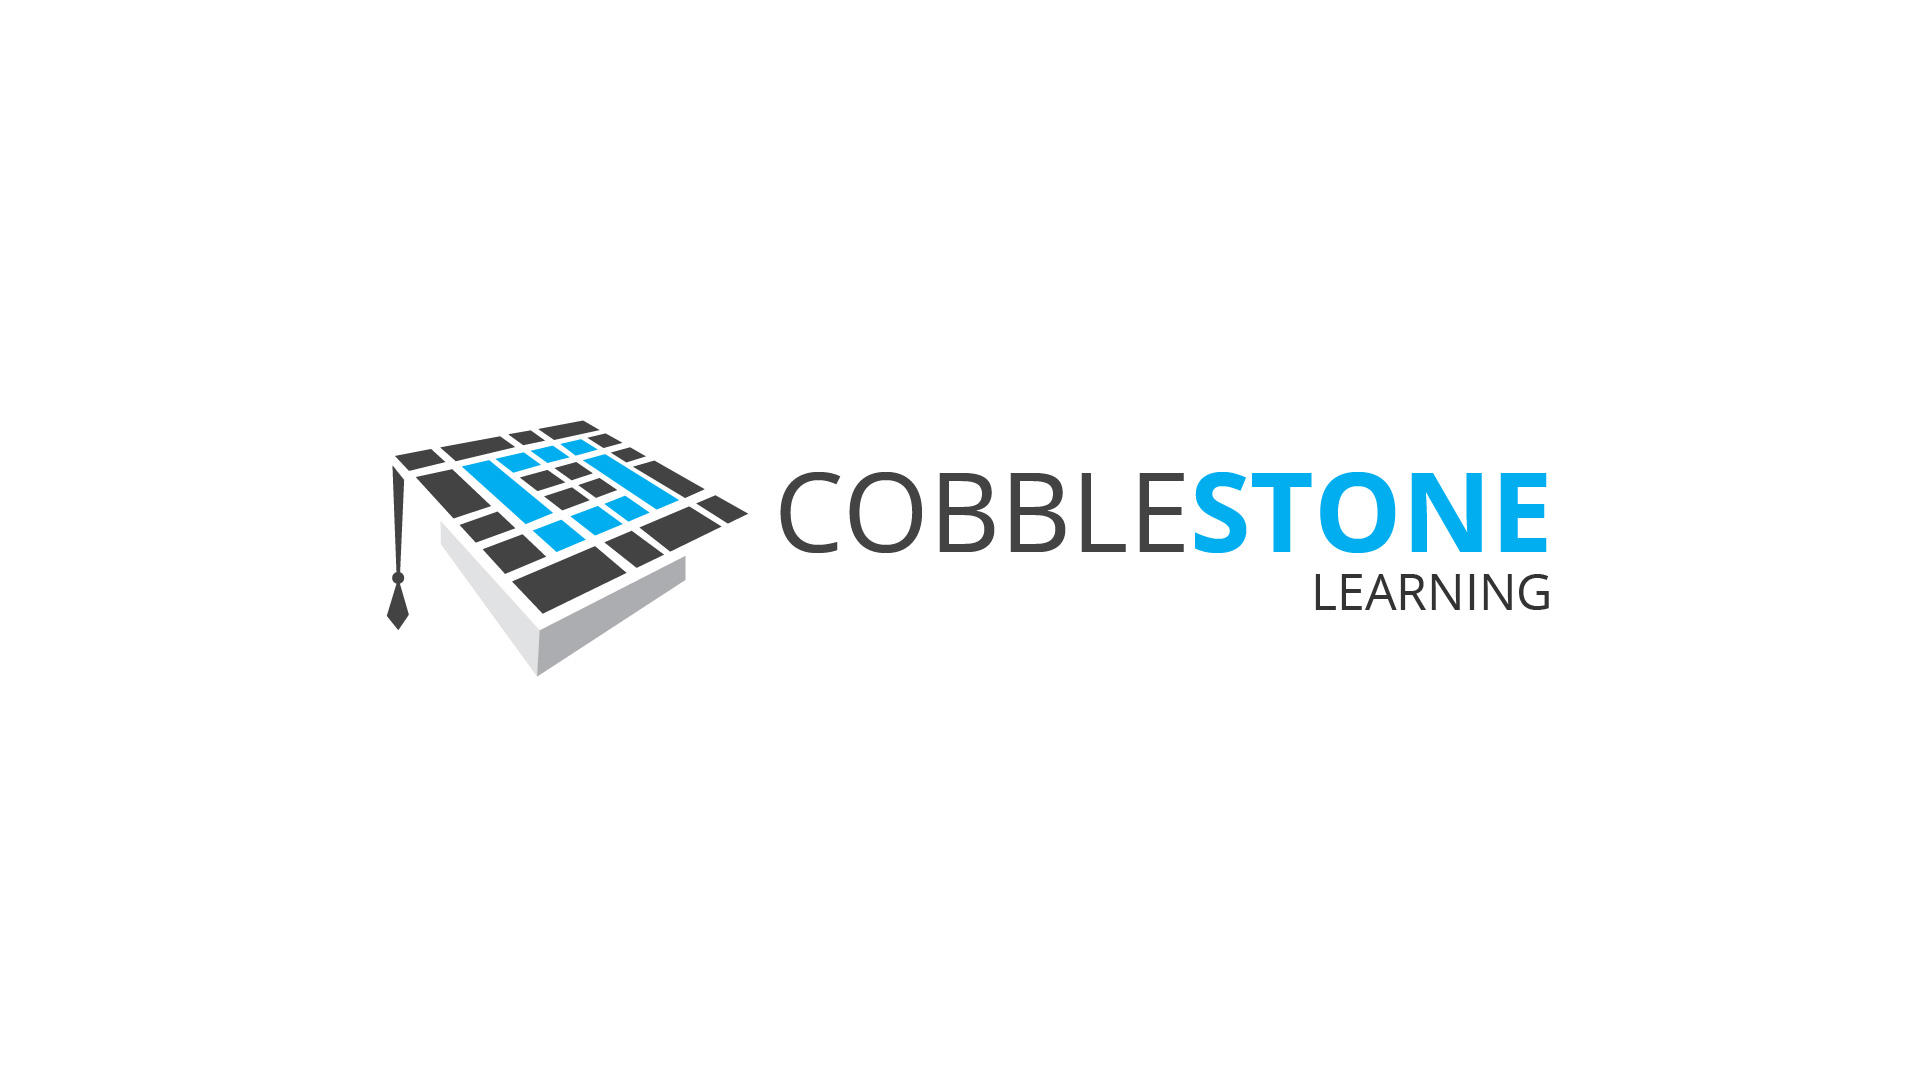 Cobblestone Learning logo